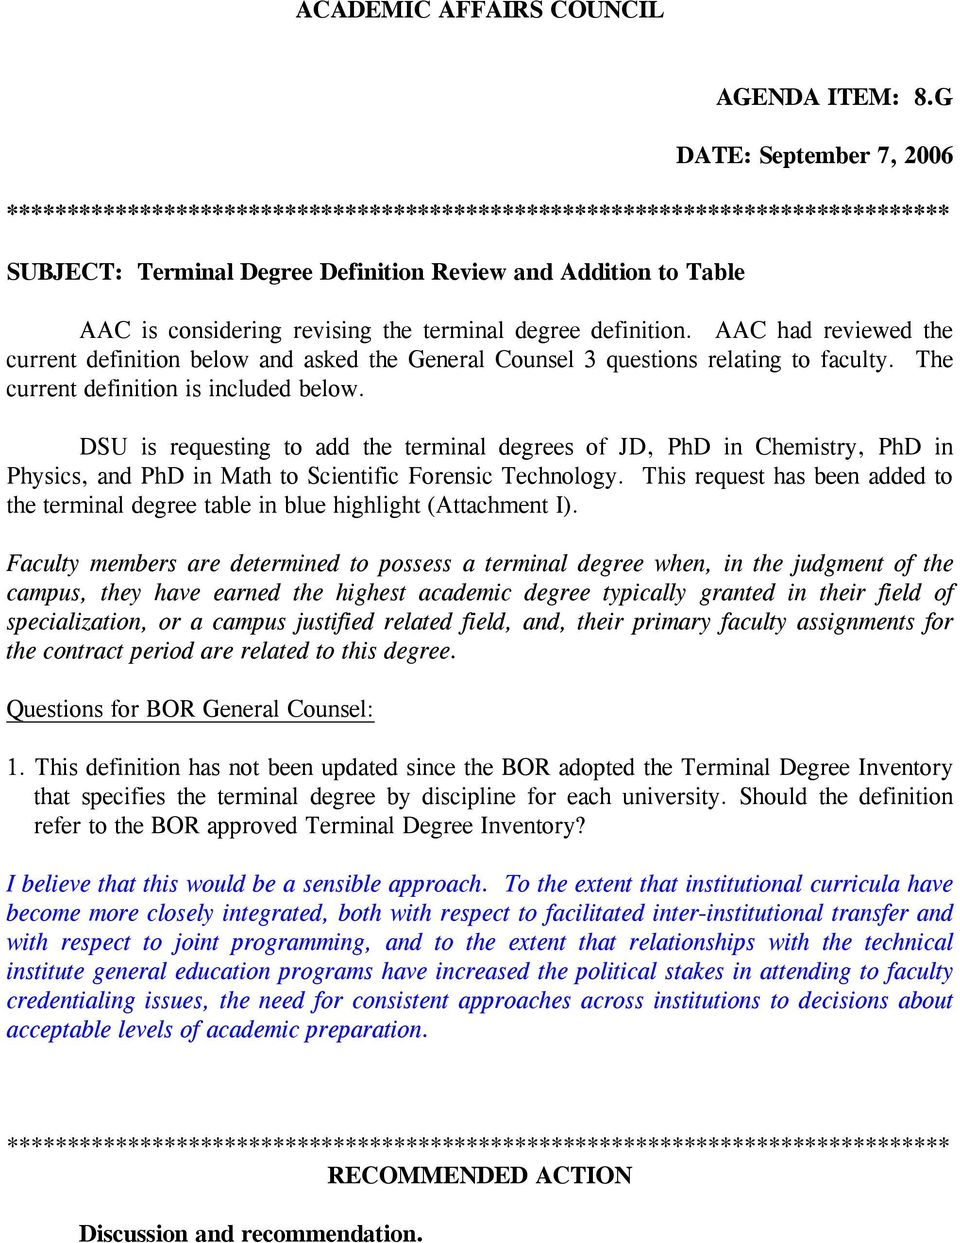 the terminal degree definition. AAC had reviewed the current definition below and asked the General Counsel 3 questions relating to faculty. The current definition is included below.